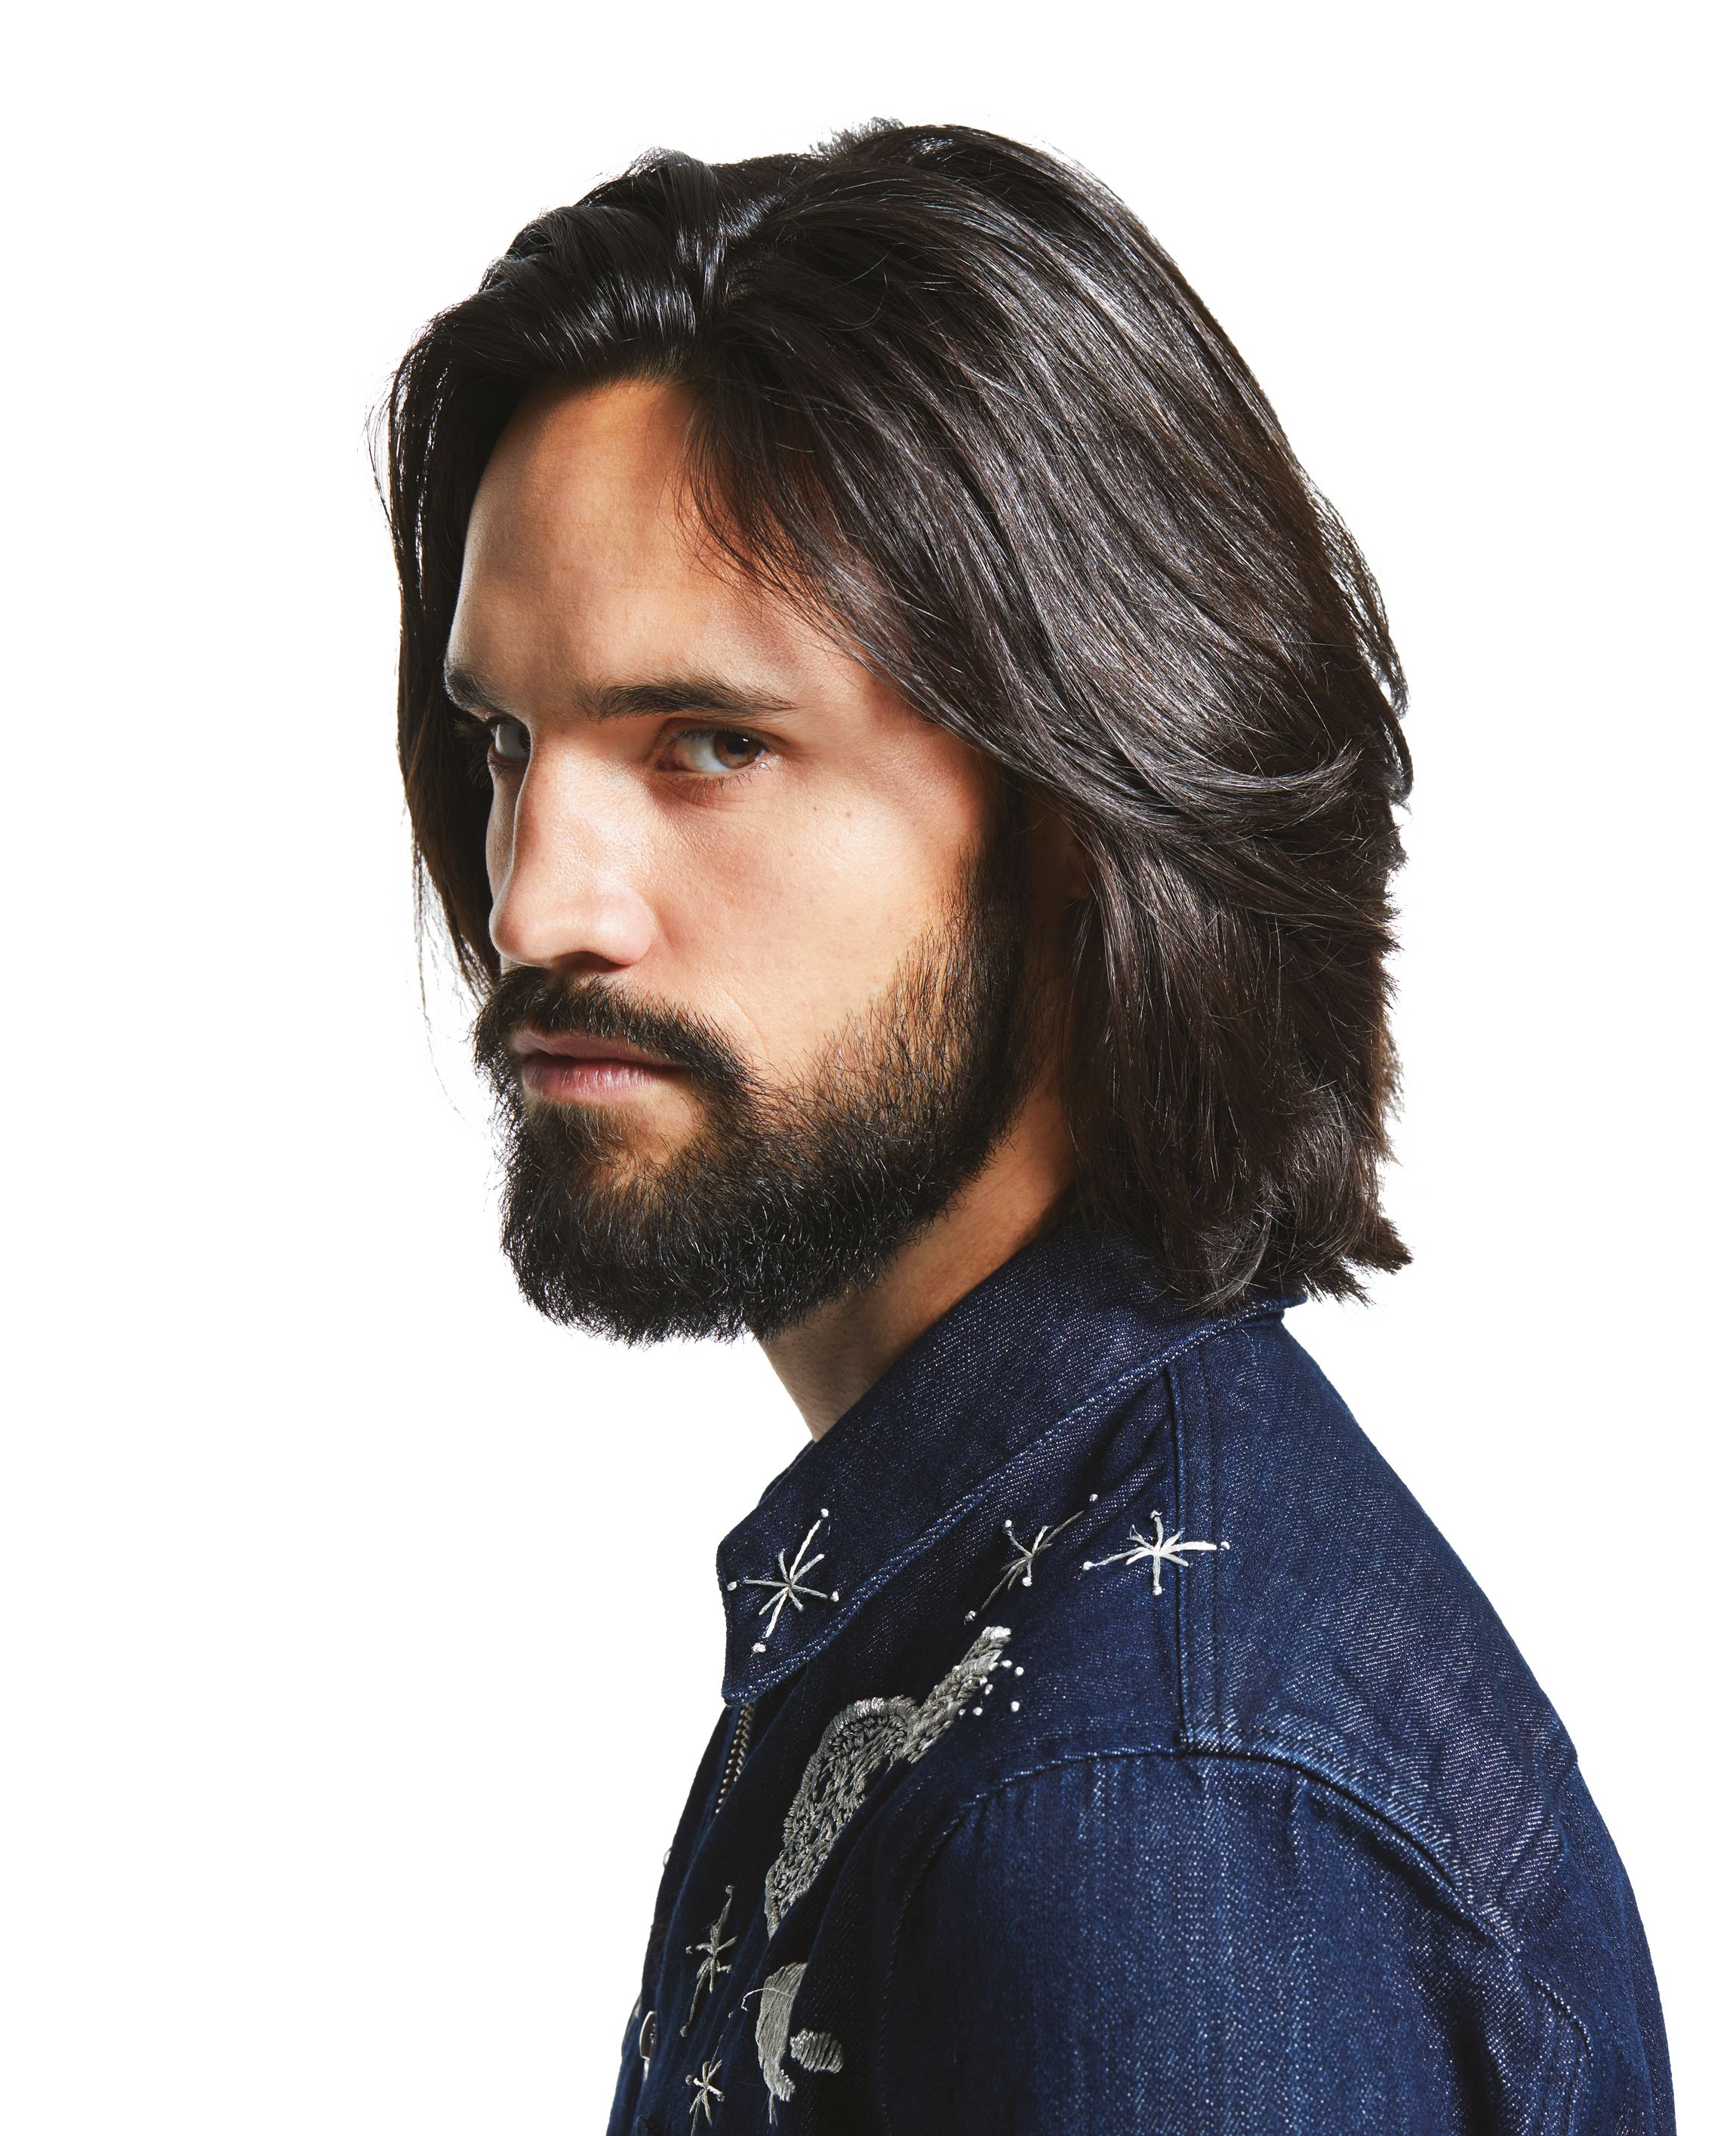 Valerian Coupe Homme Cheveux Longs Coiffure Cheveux Long Homme Coupe De Cheveux Barbe Cheveux Long Homme